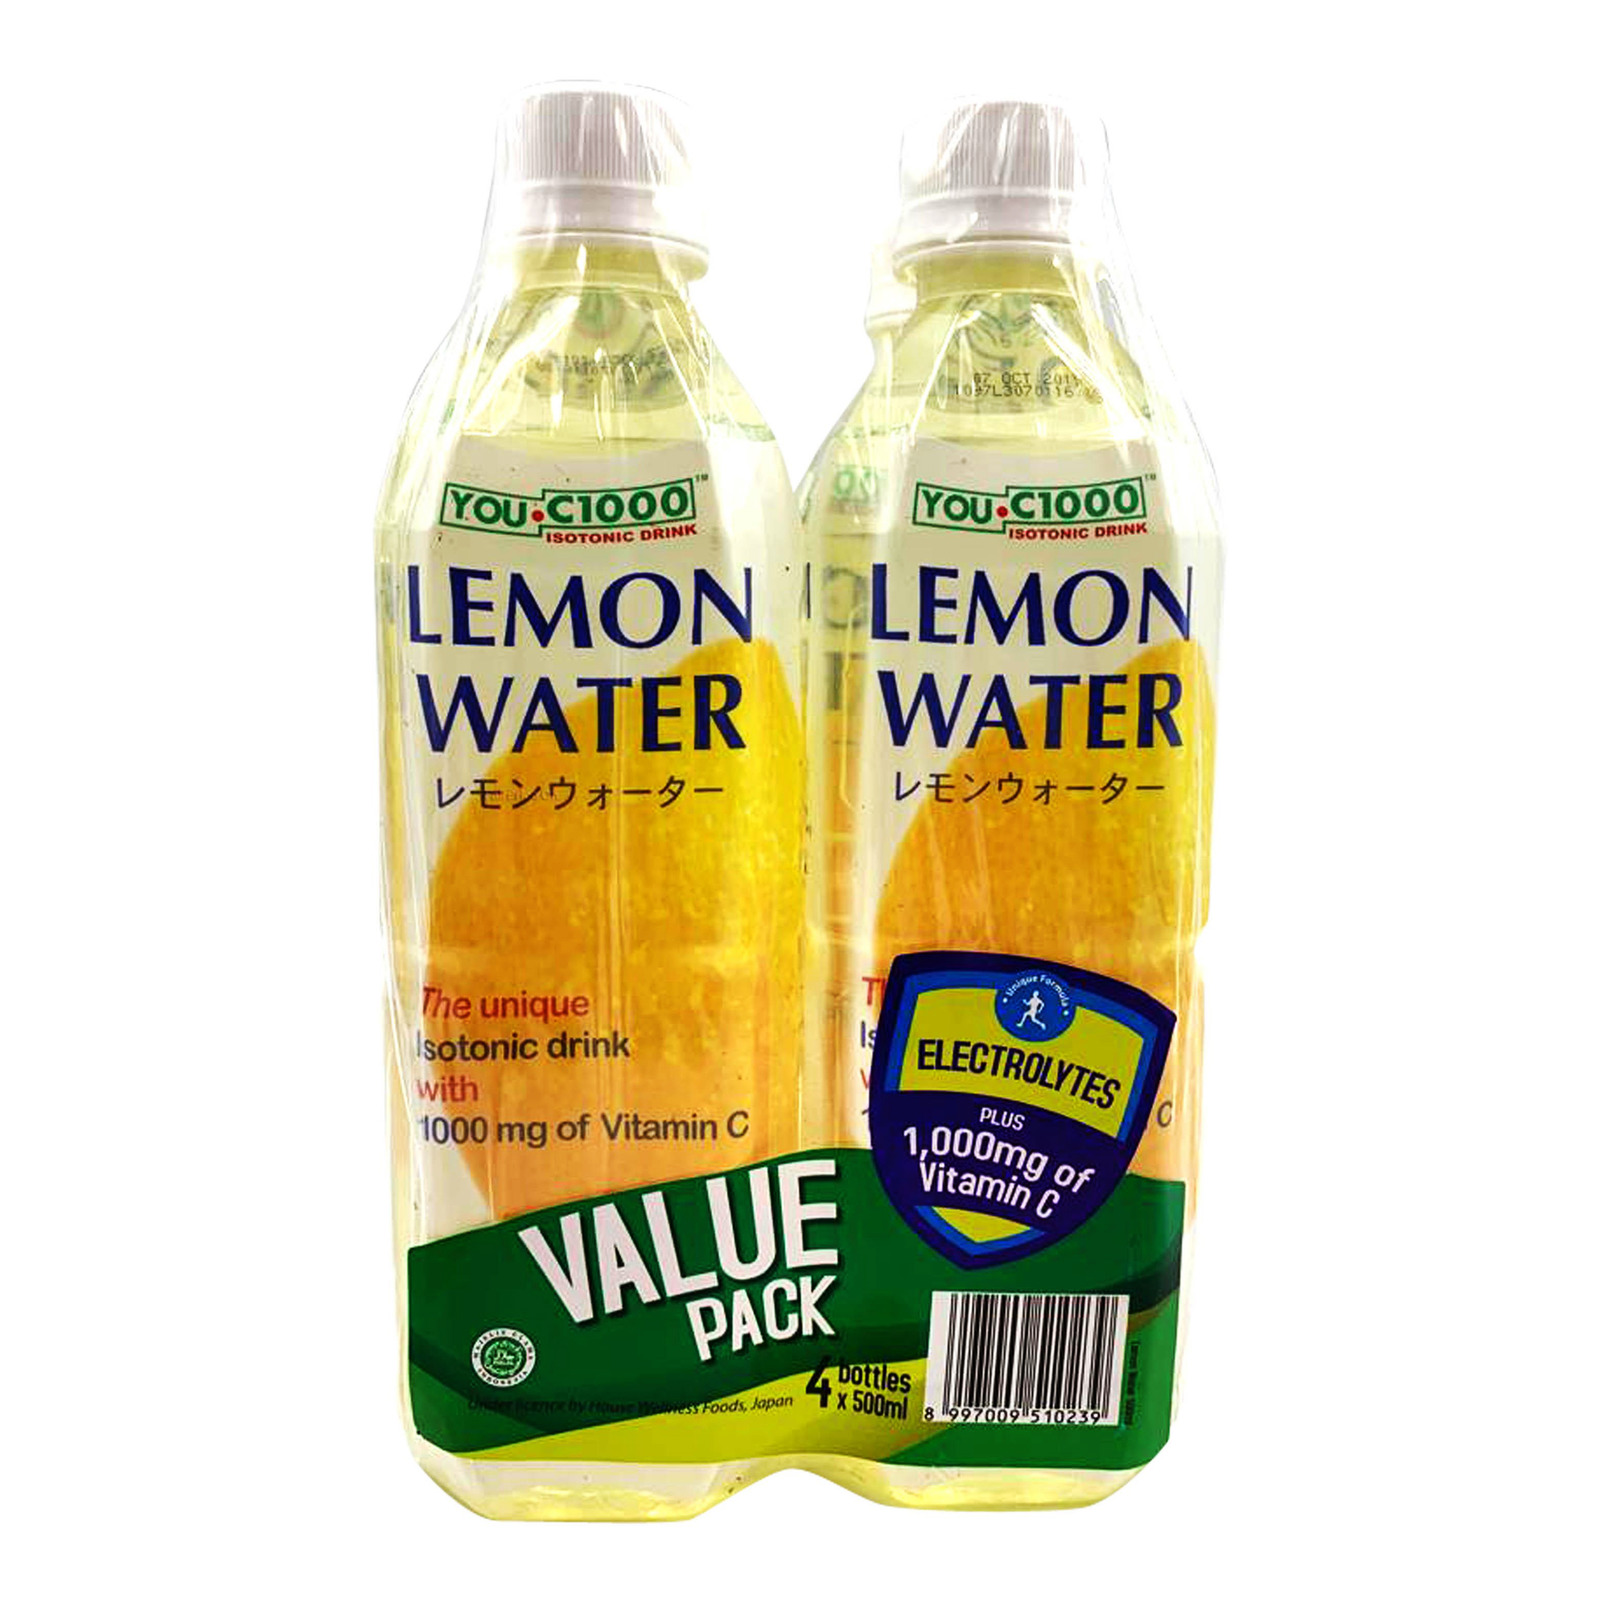 YOU-C1000 Isotonic Bottle Water - Lemon